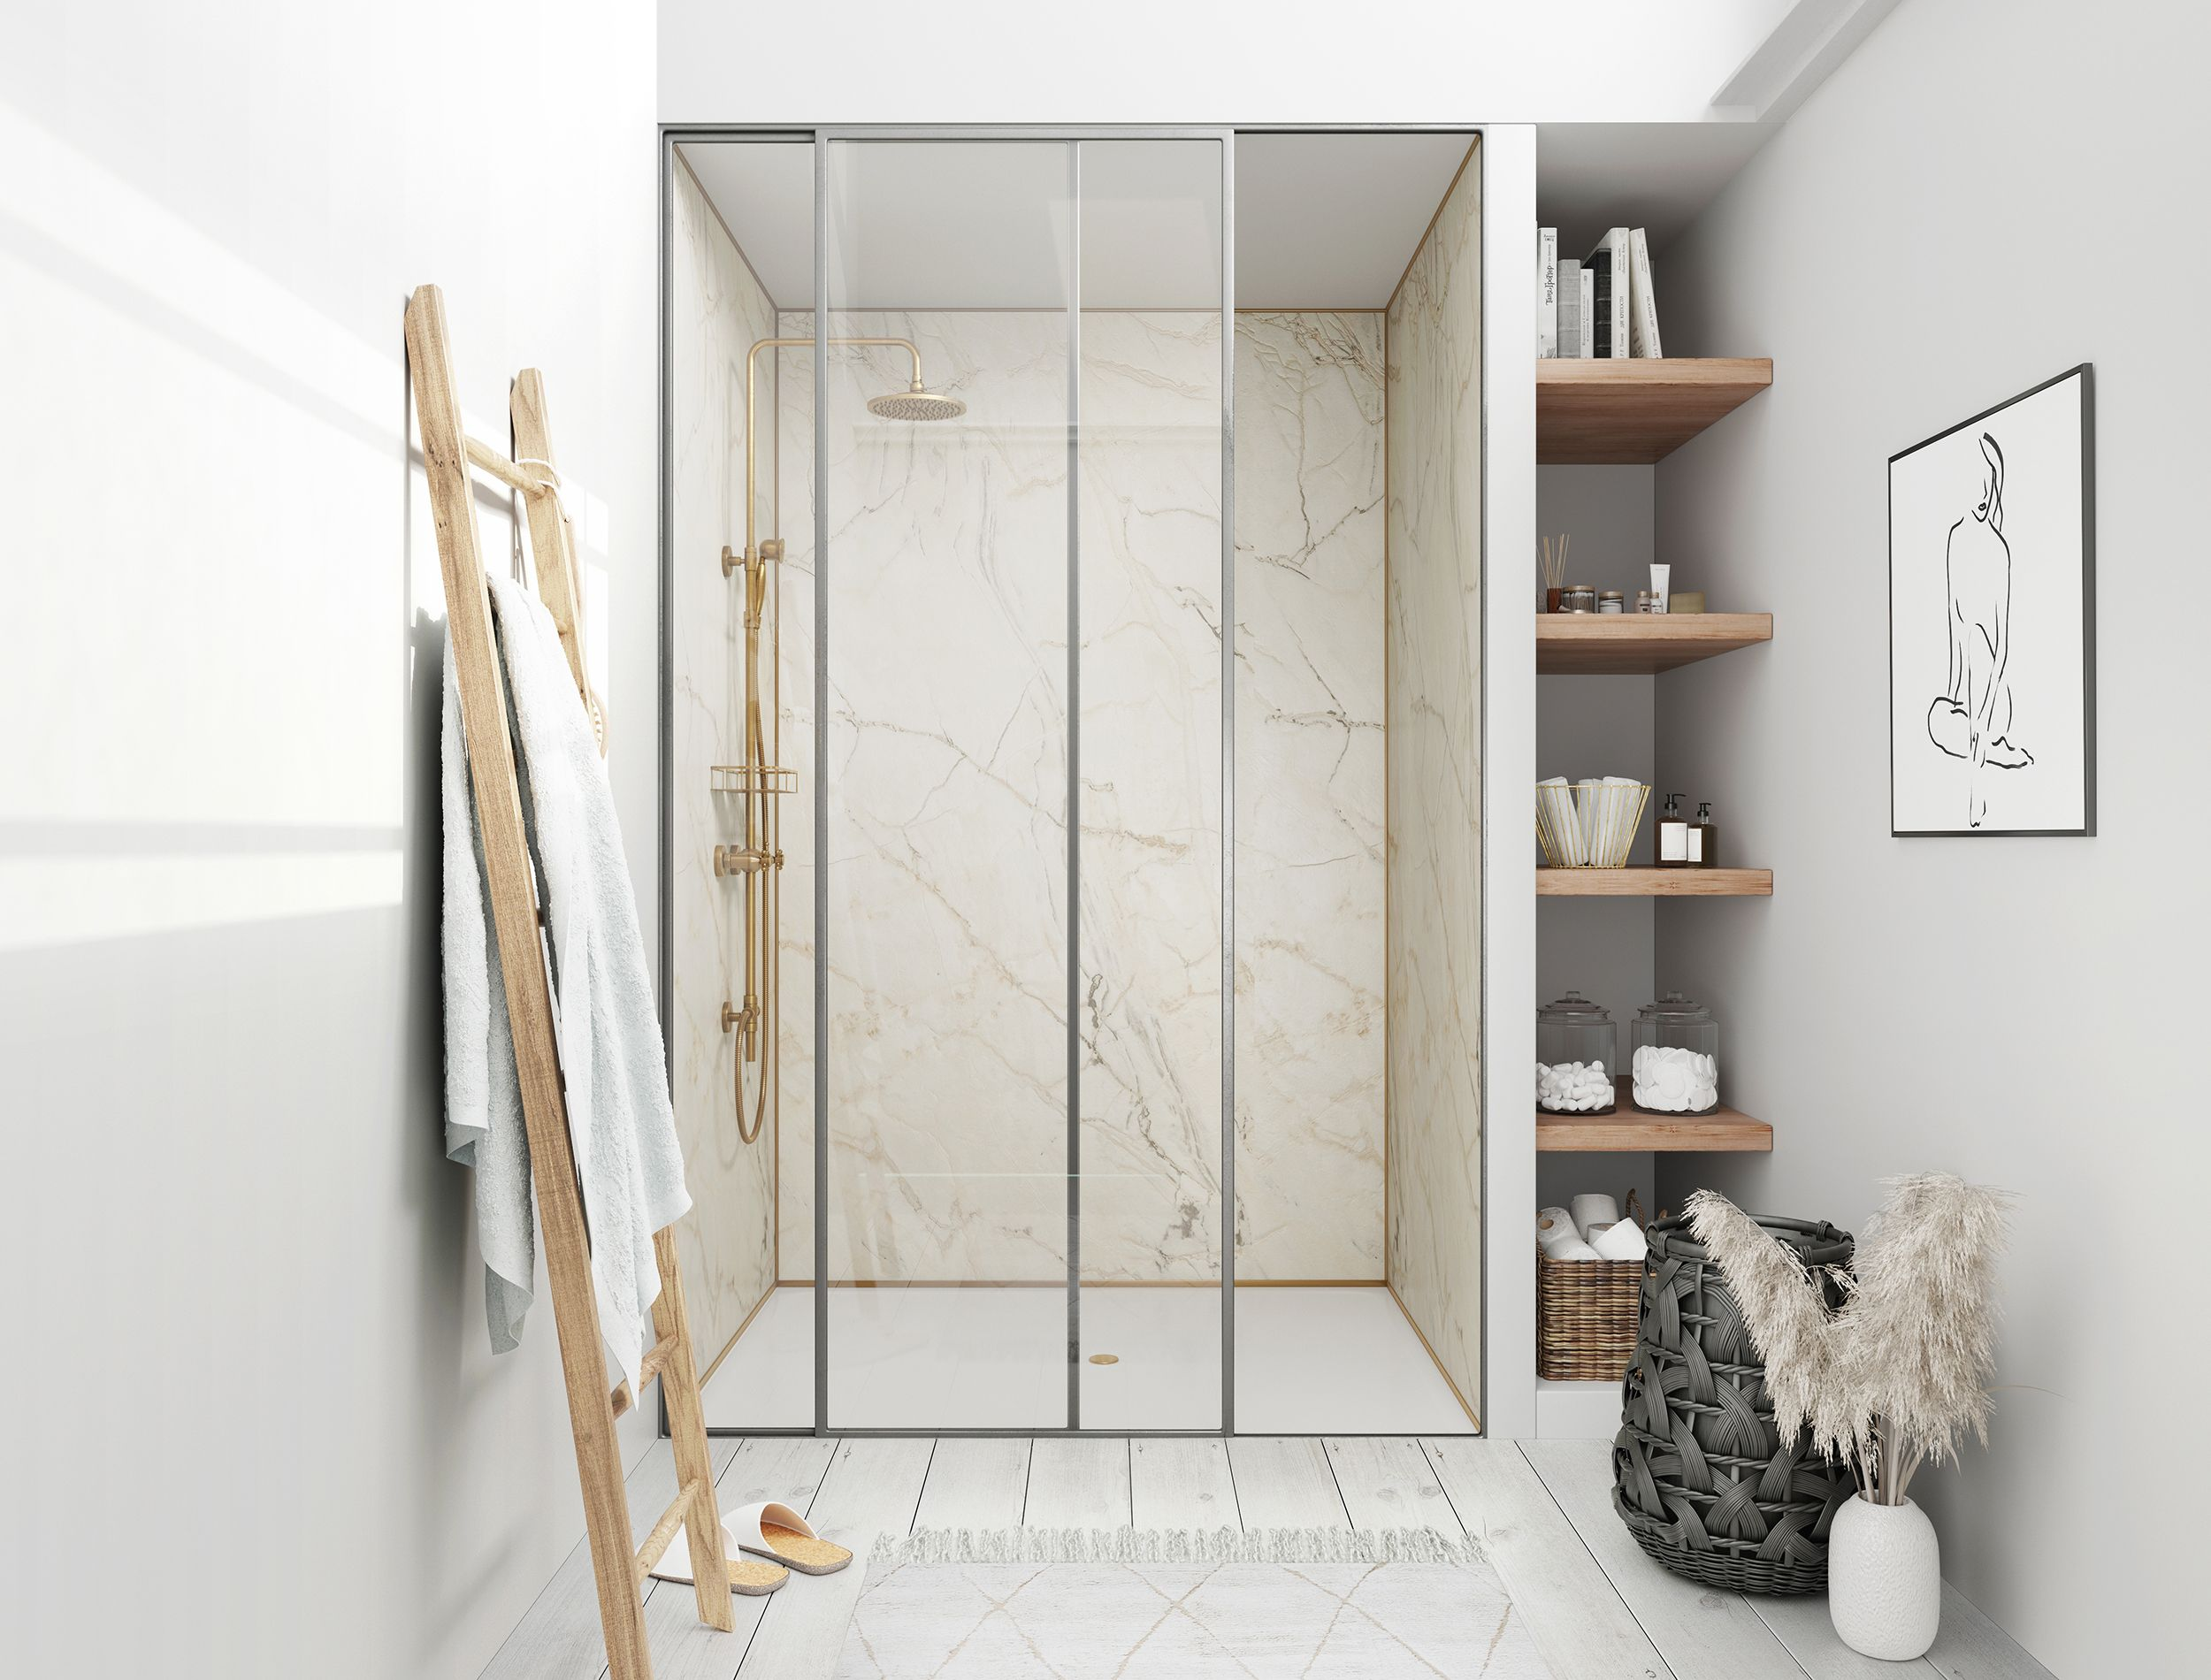 Shower room ideas. Showerwall